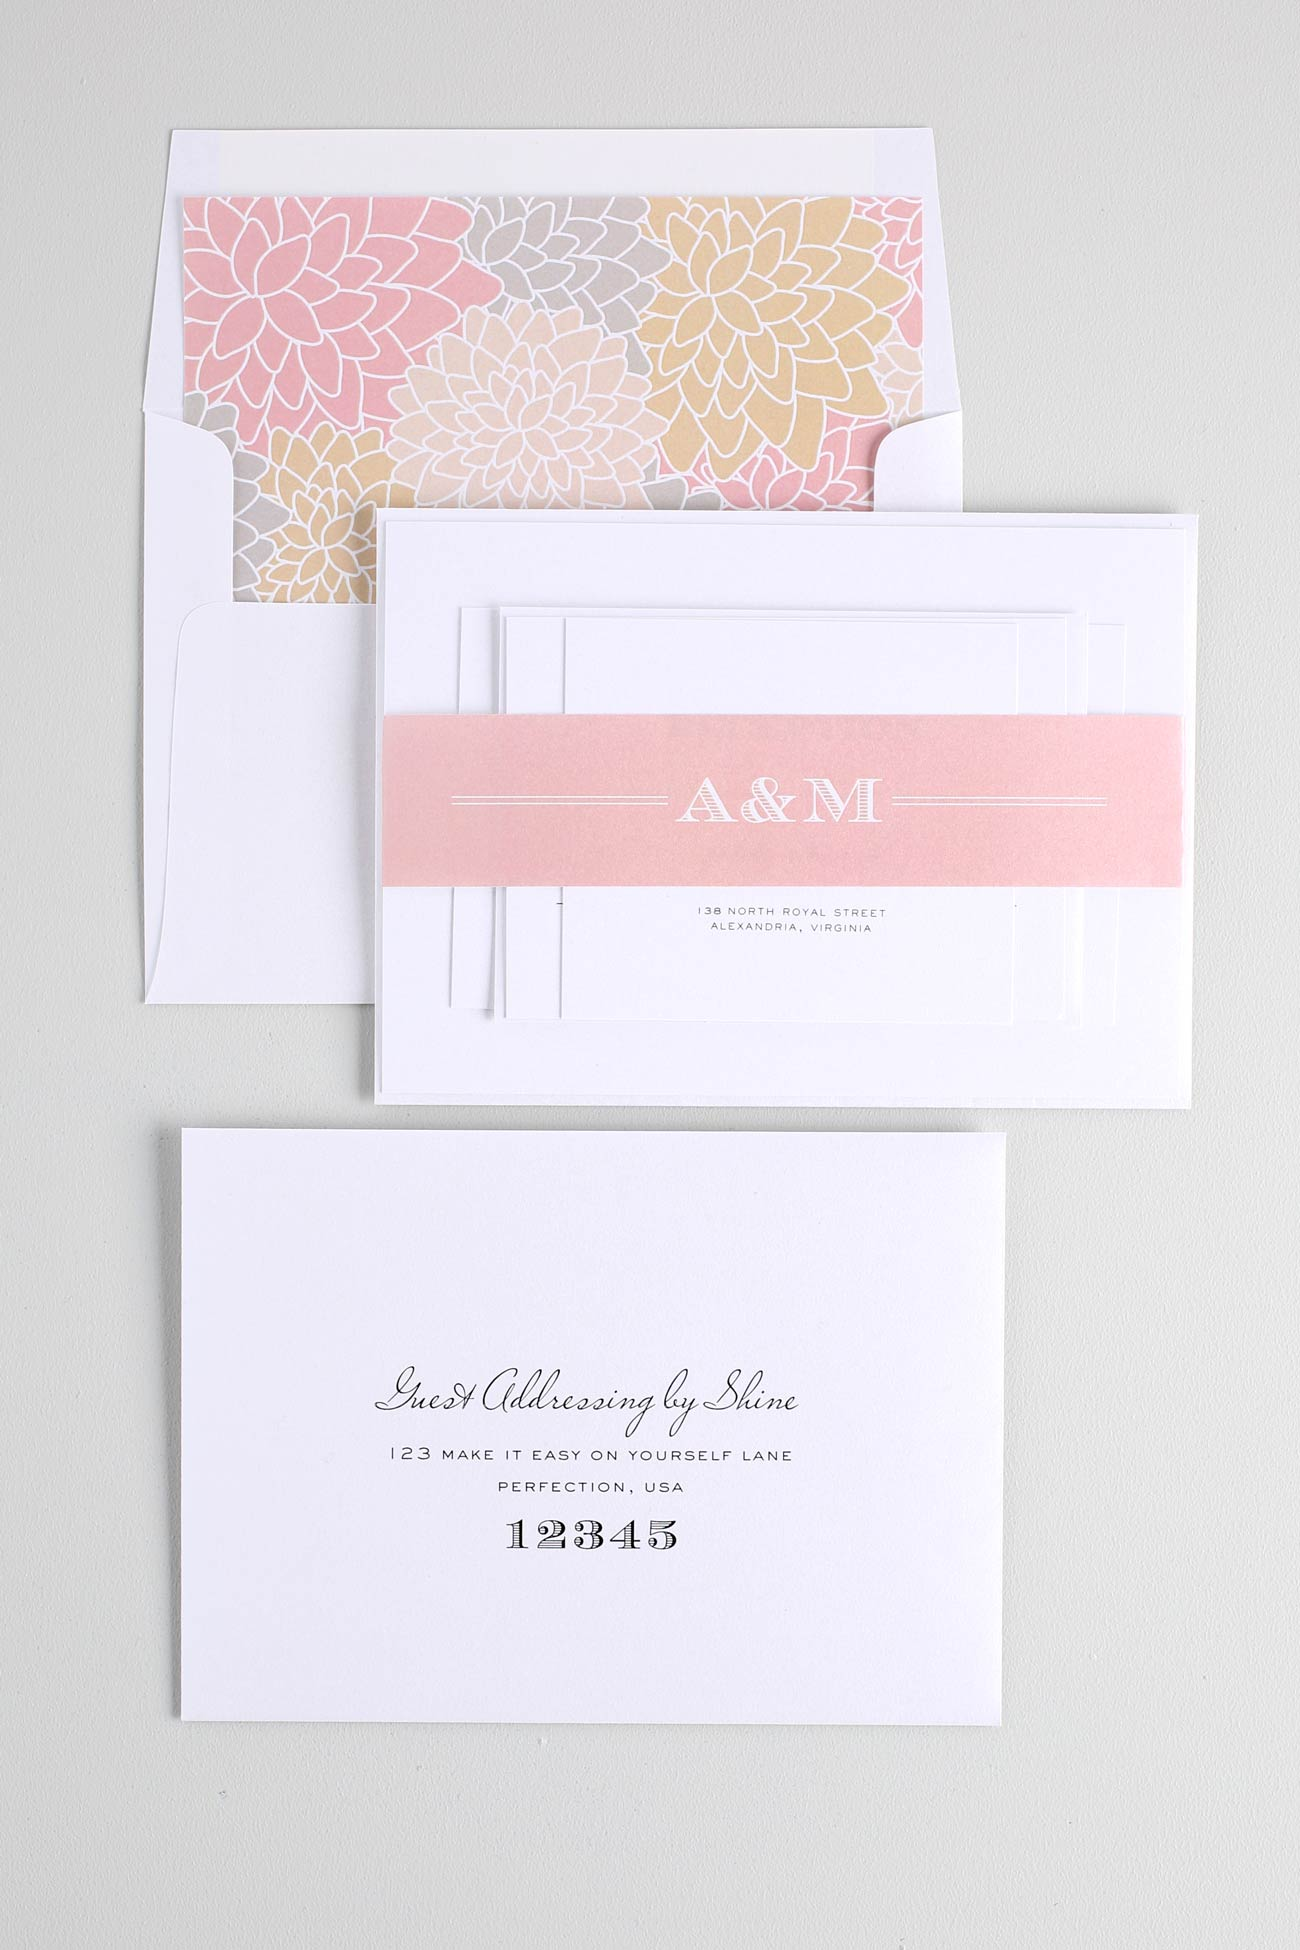 Engravers monogram Wedding Invitations in blush